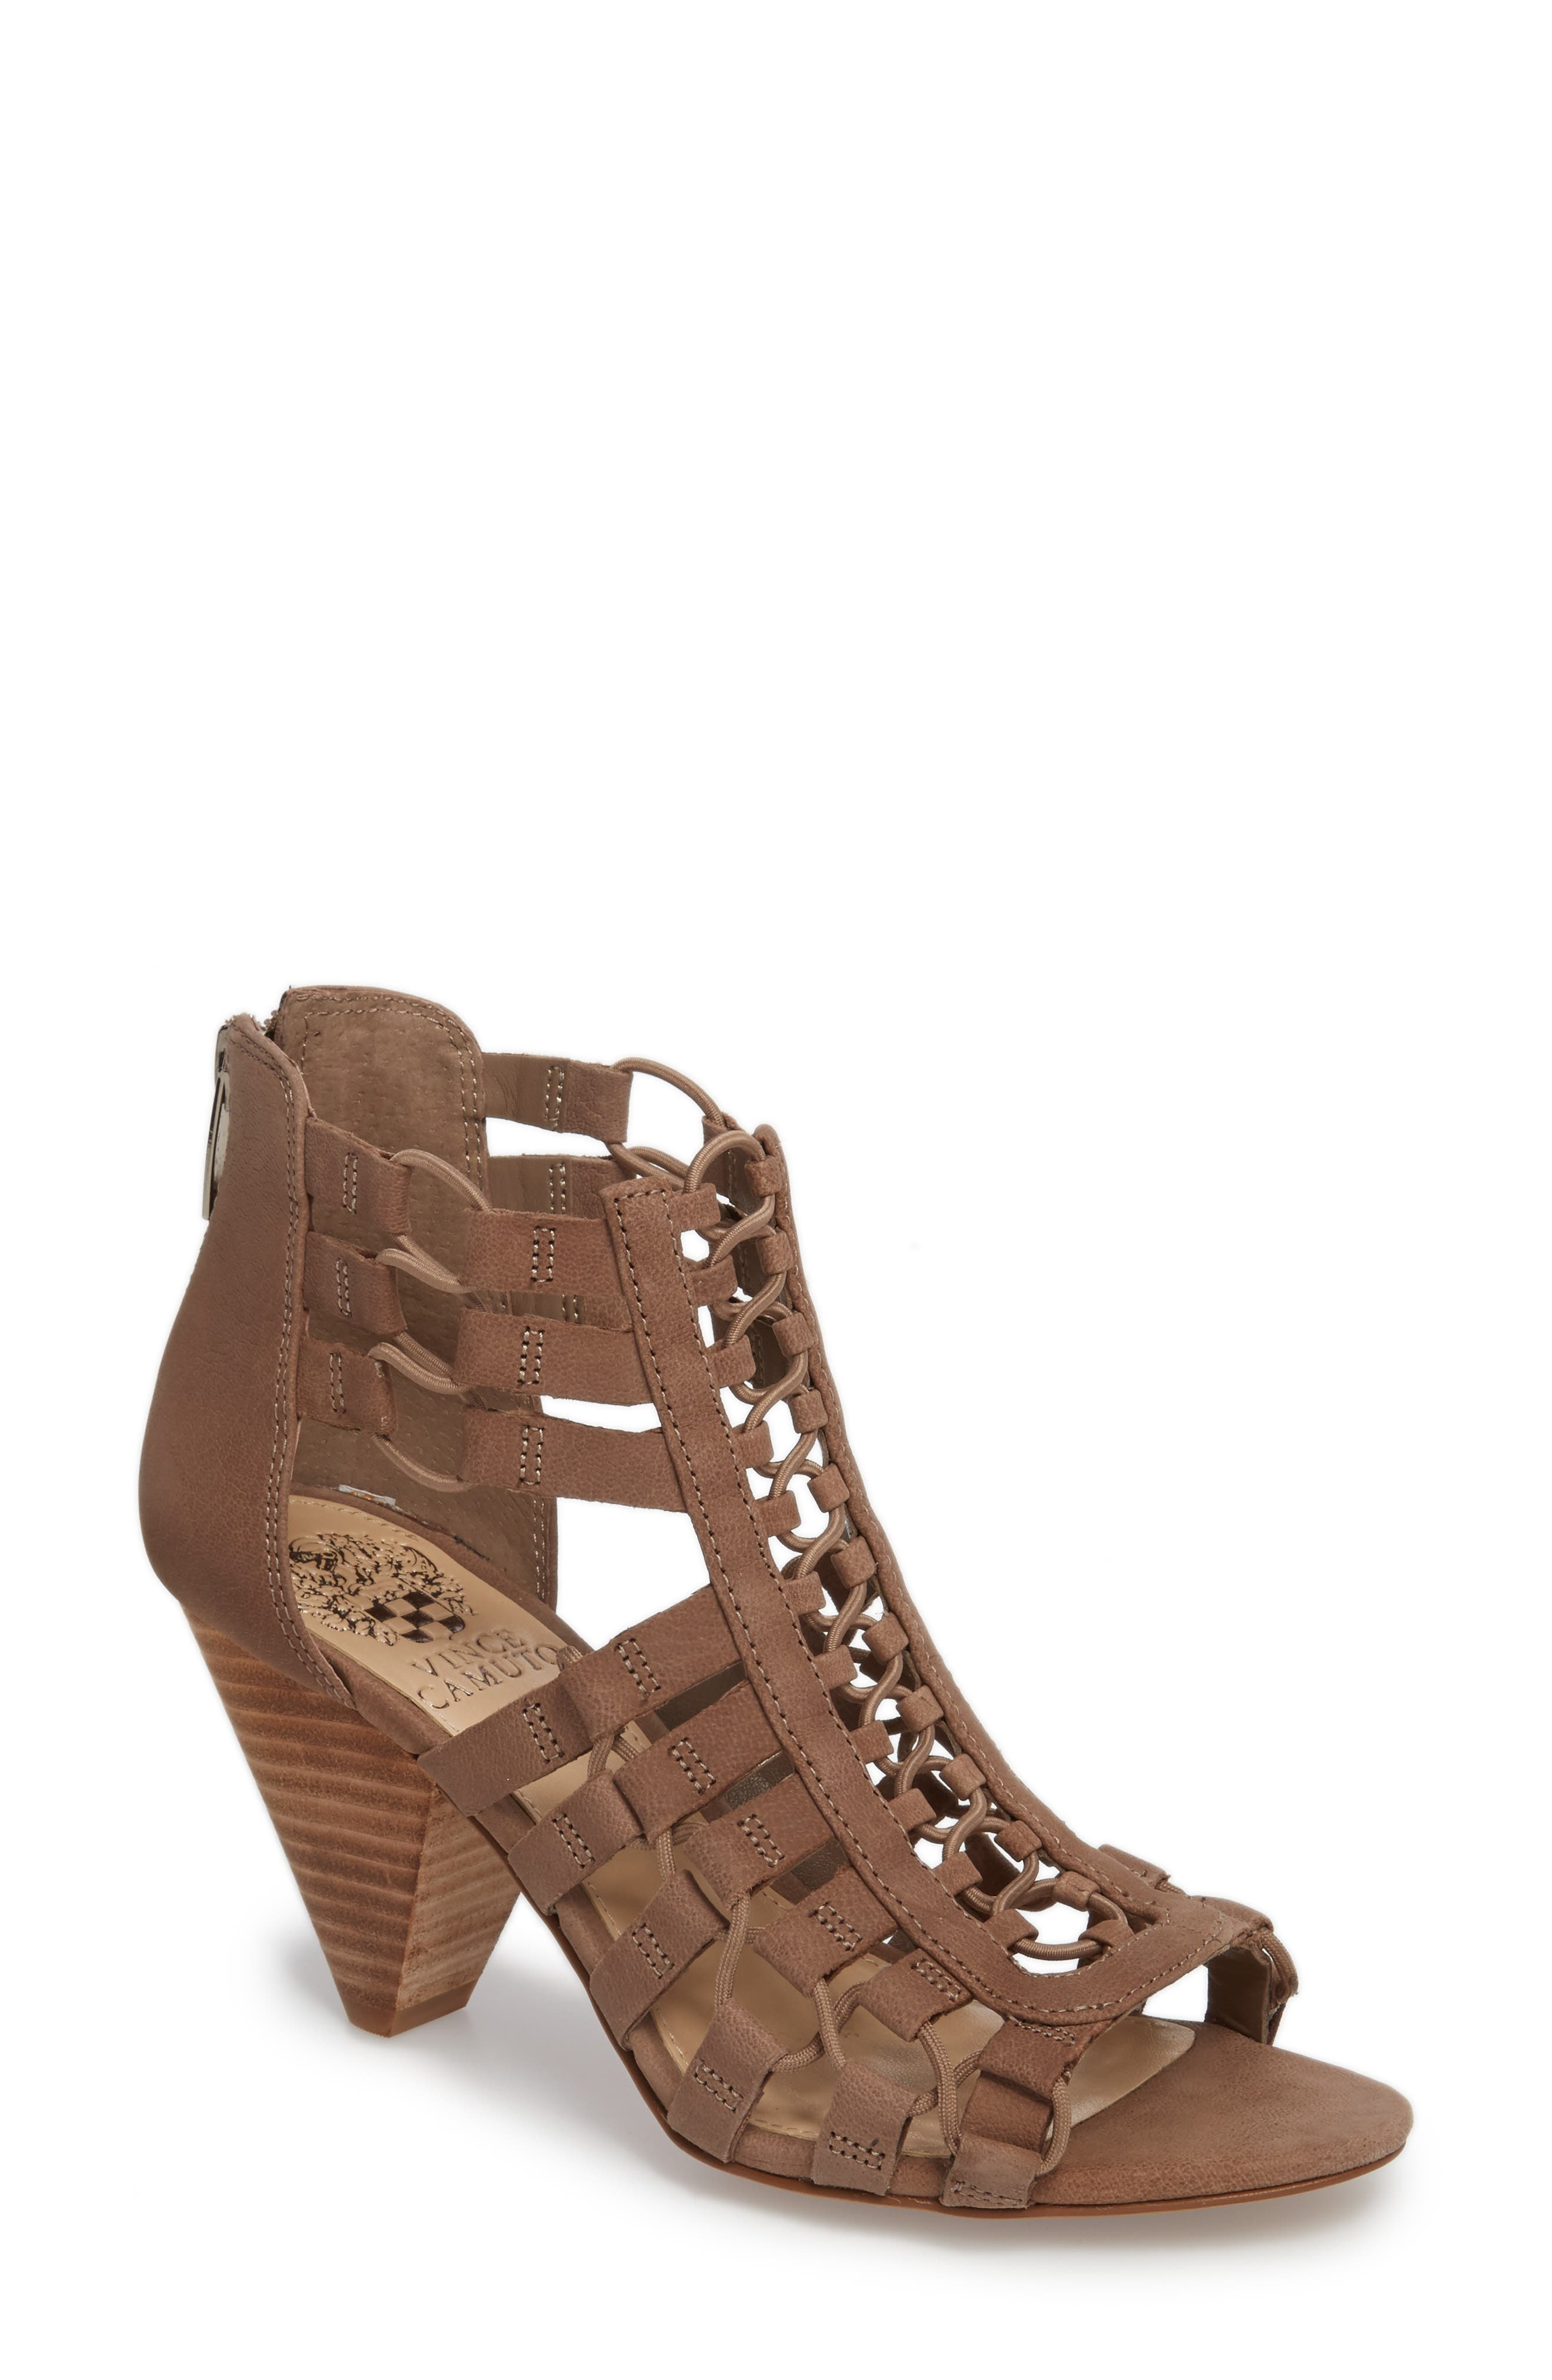 Elanso Sandal,                         Main,                         color, Urban Lux Leather